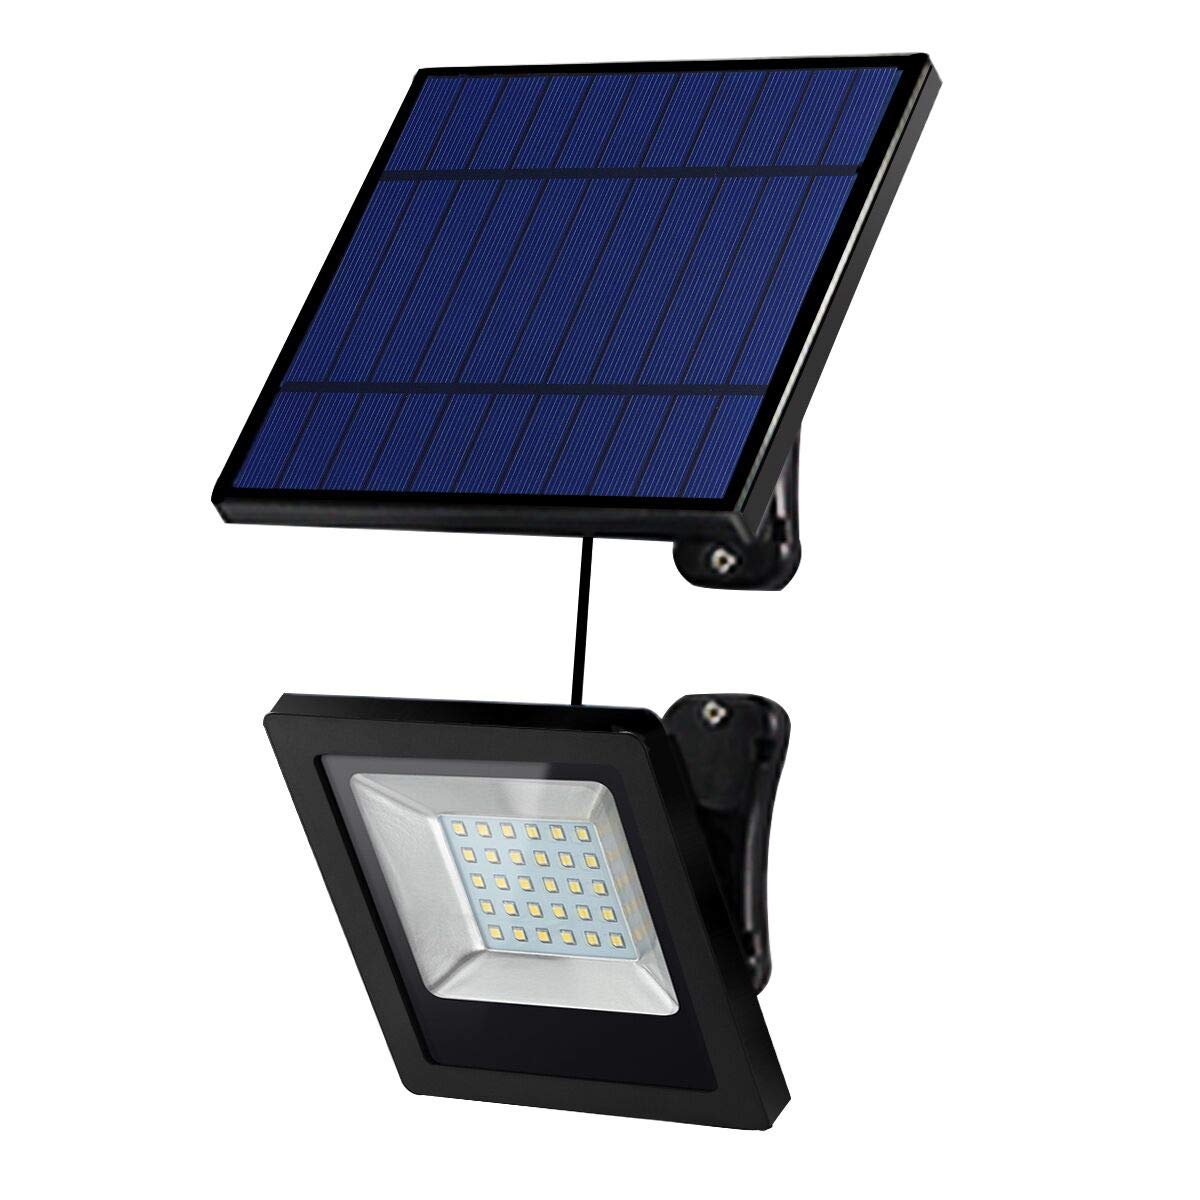 Solar Lights Outdoor, IP65 Waterproof Solar Lights(White Light)